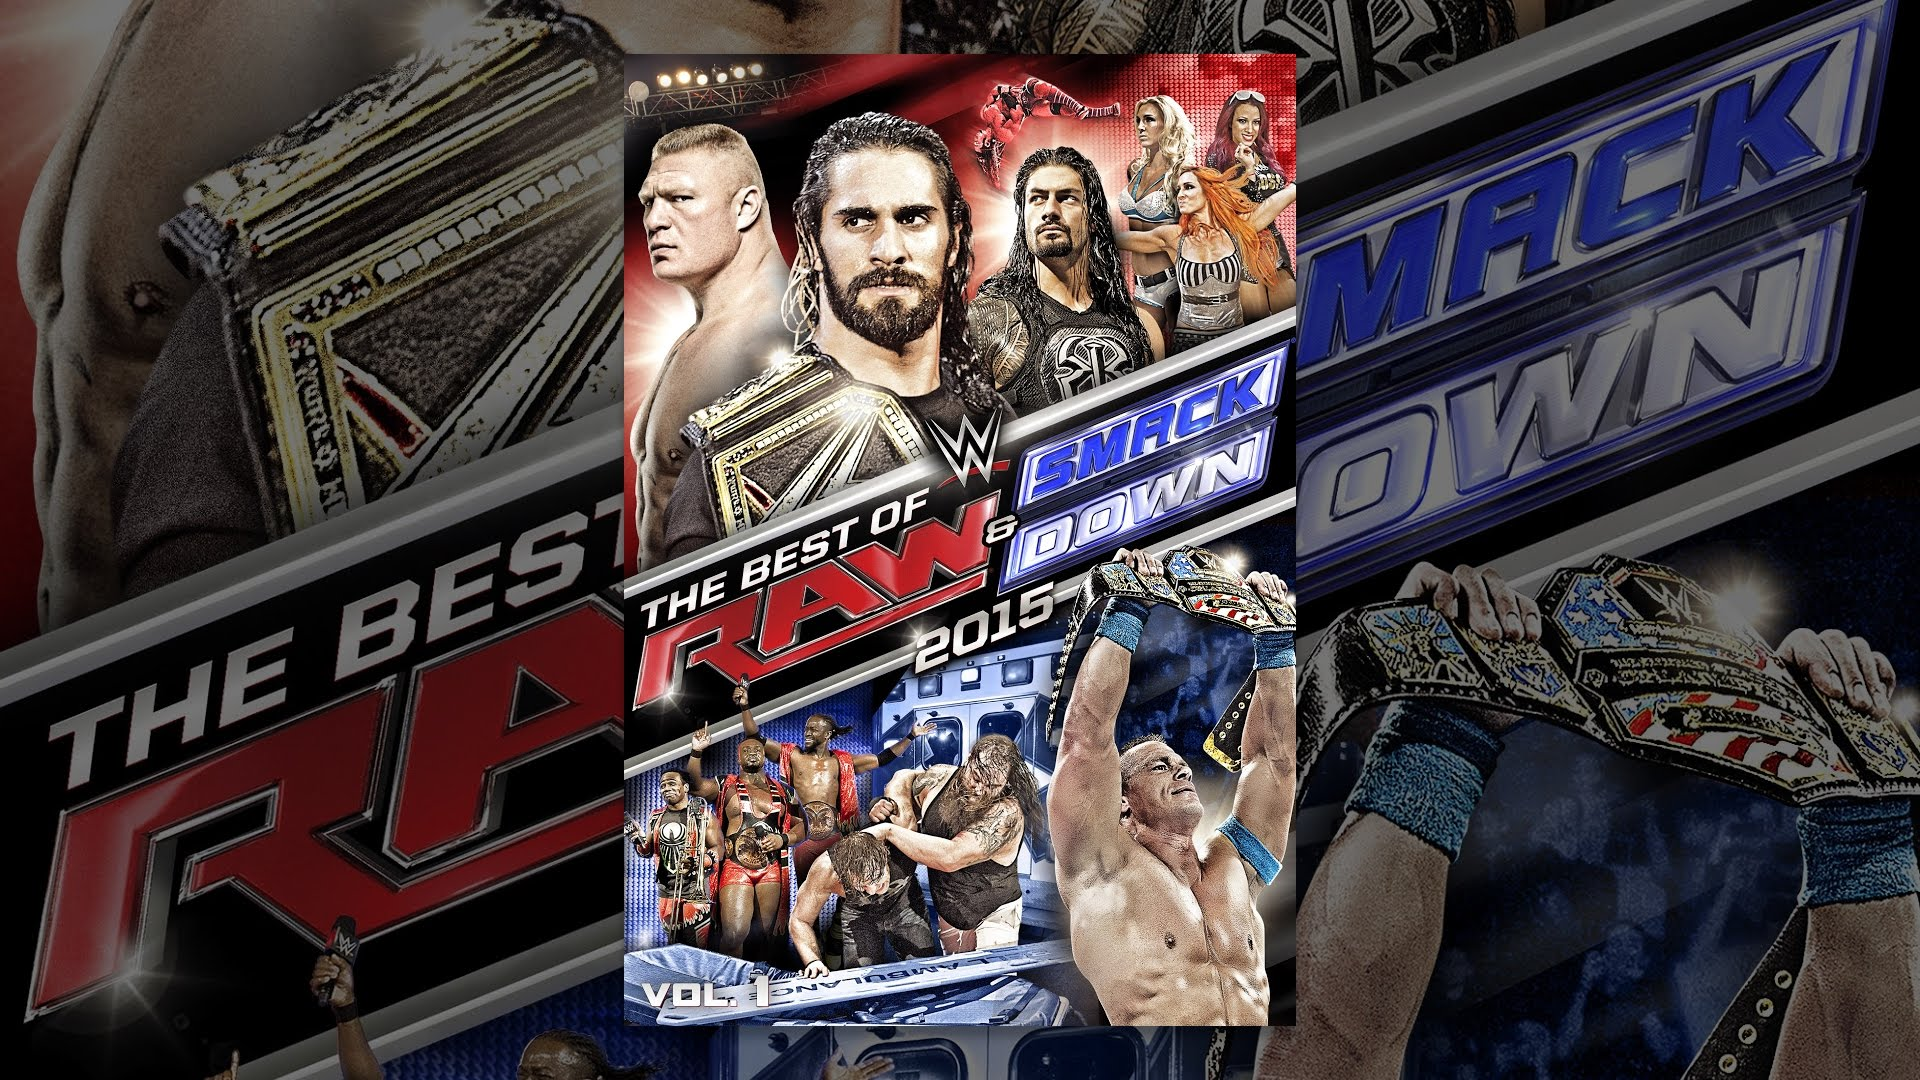 WWE: Best of RAW and Smackdown 2015 Volume 1